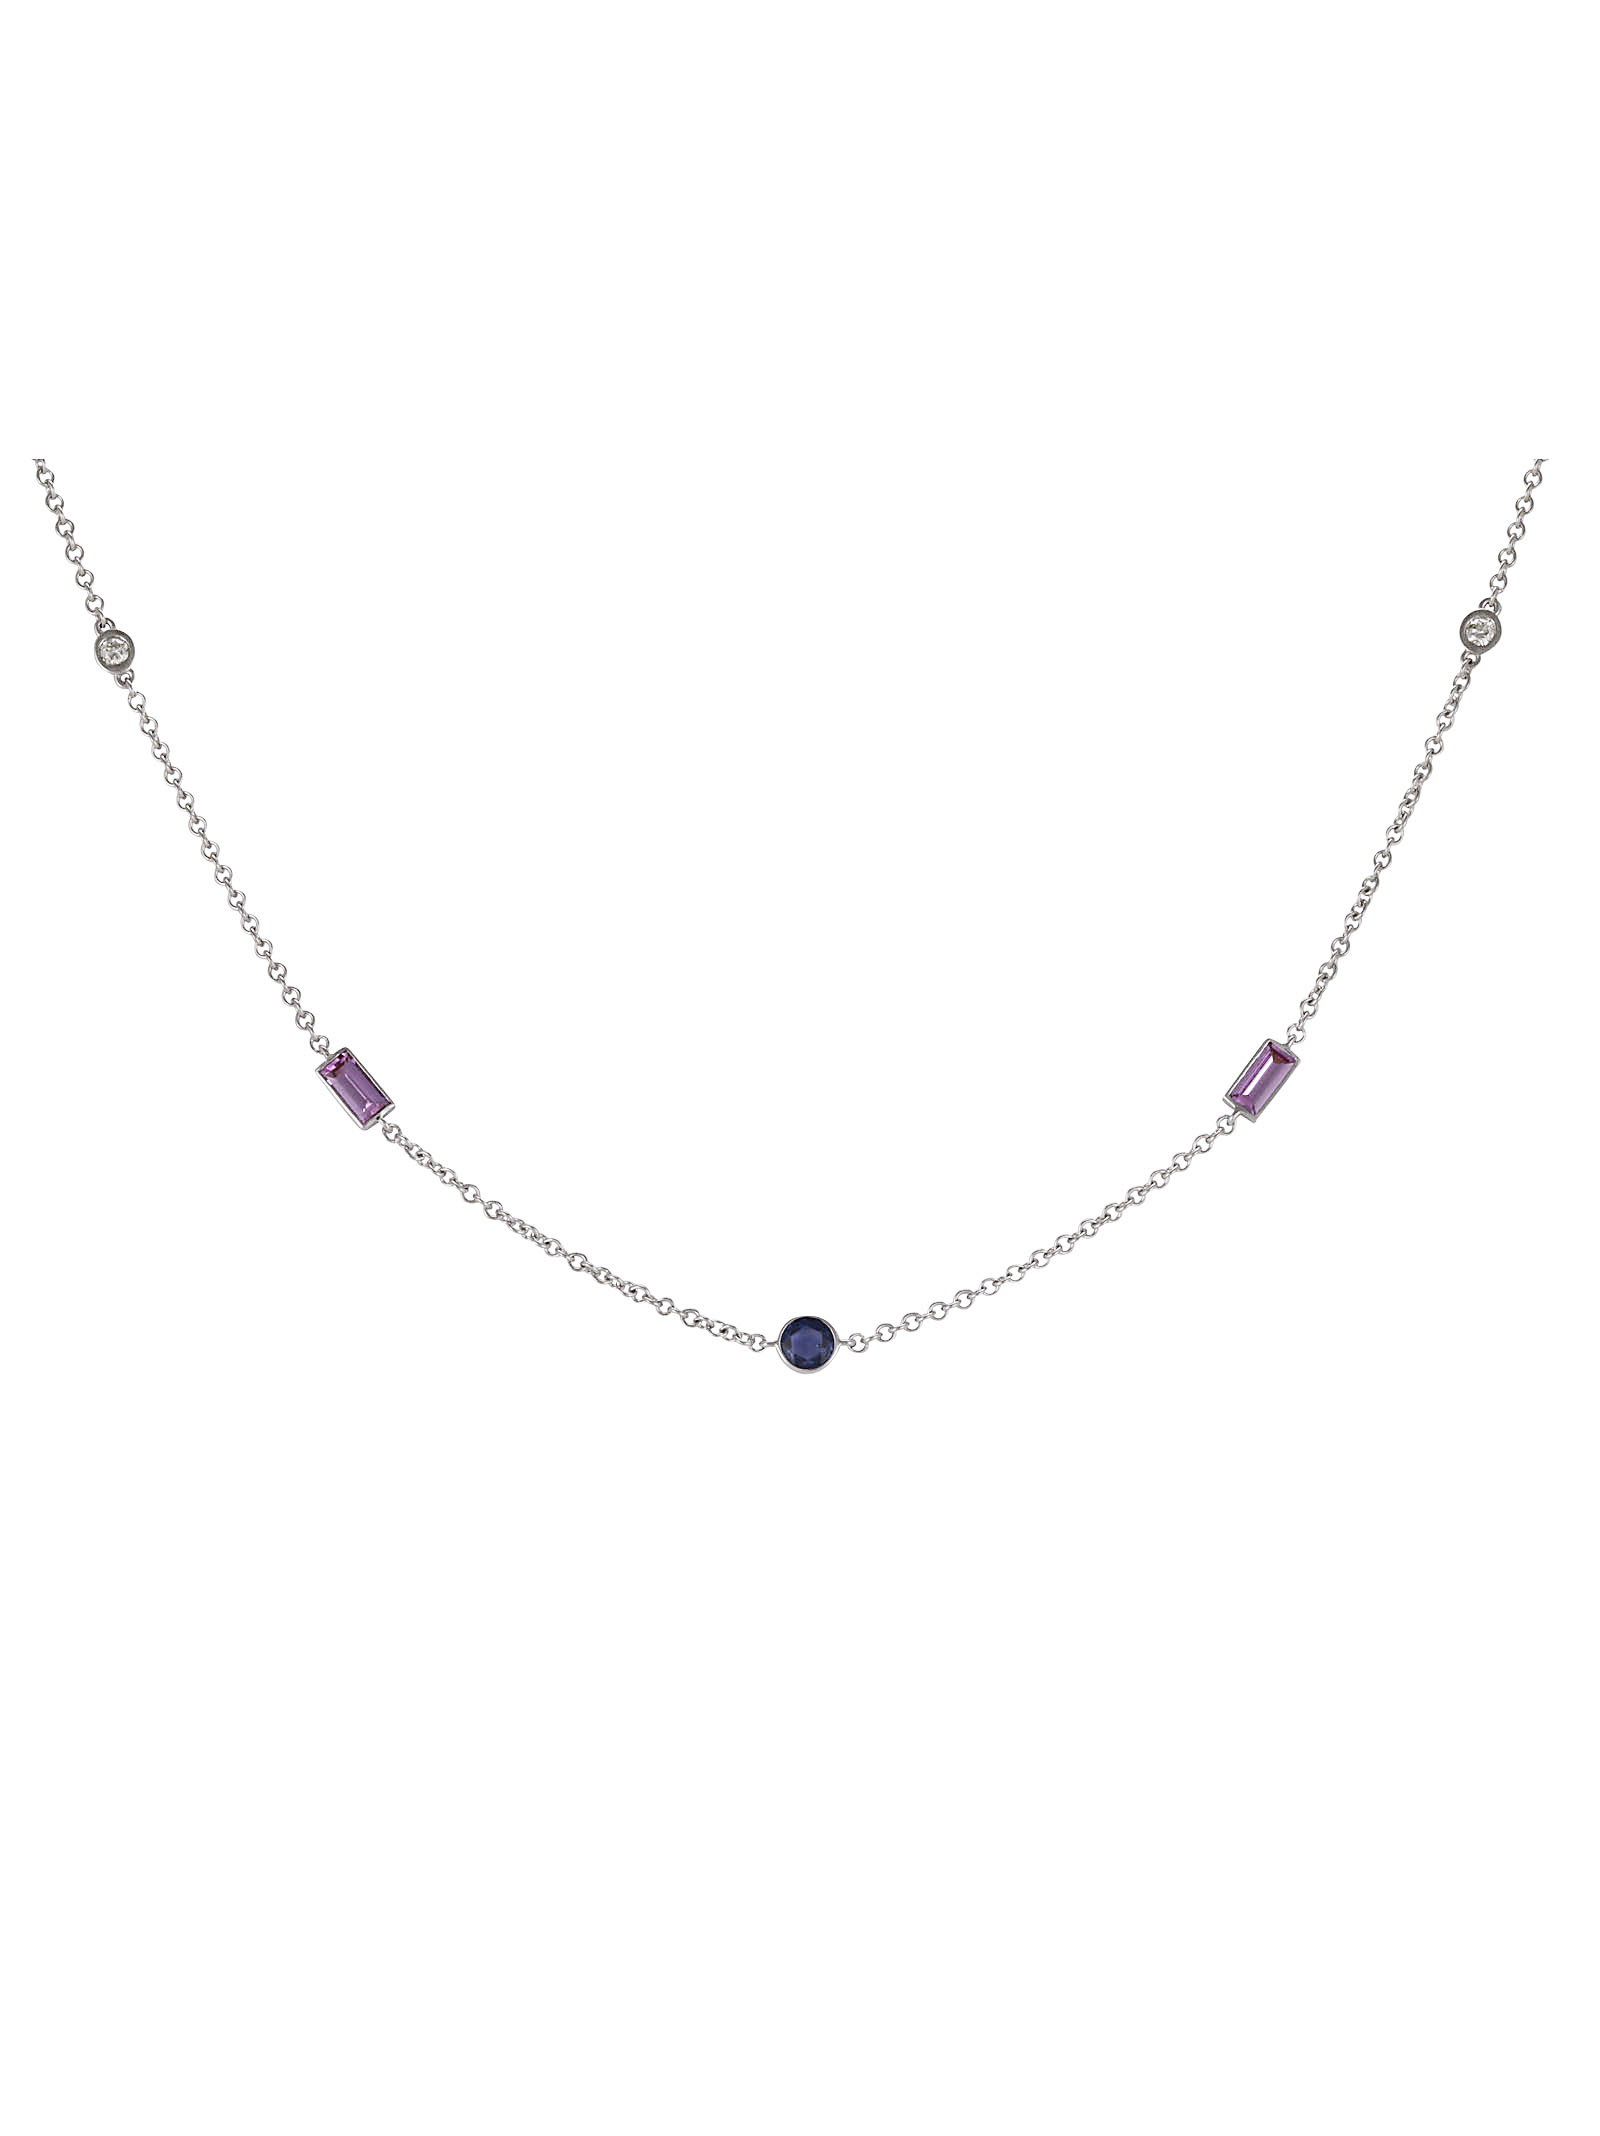 Blue and Pink Sapphire Necklace